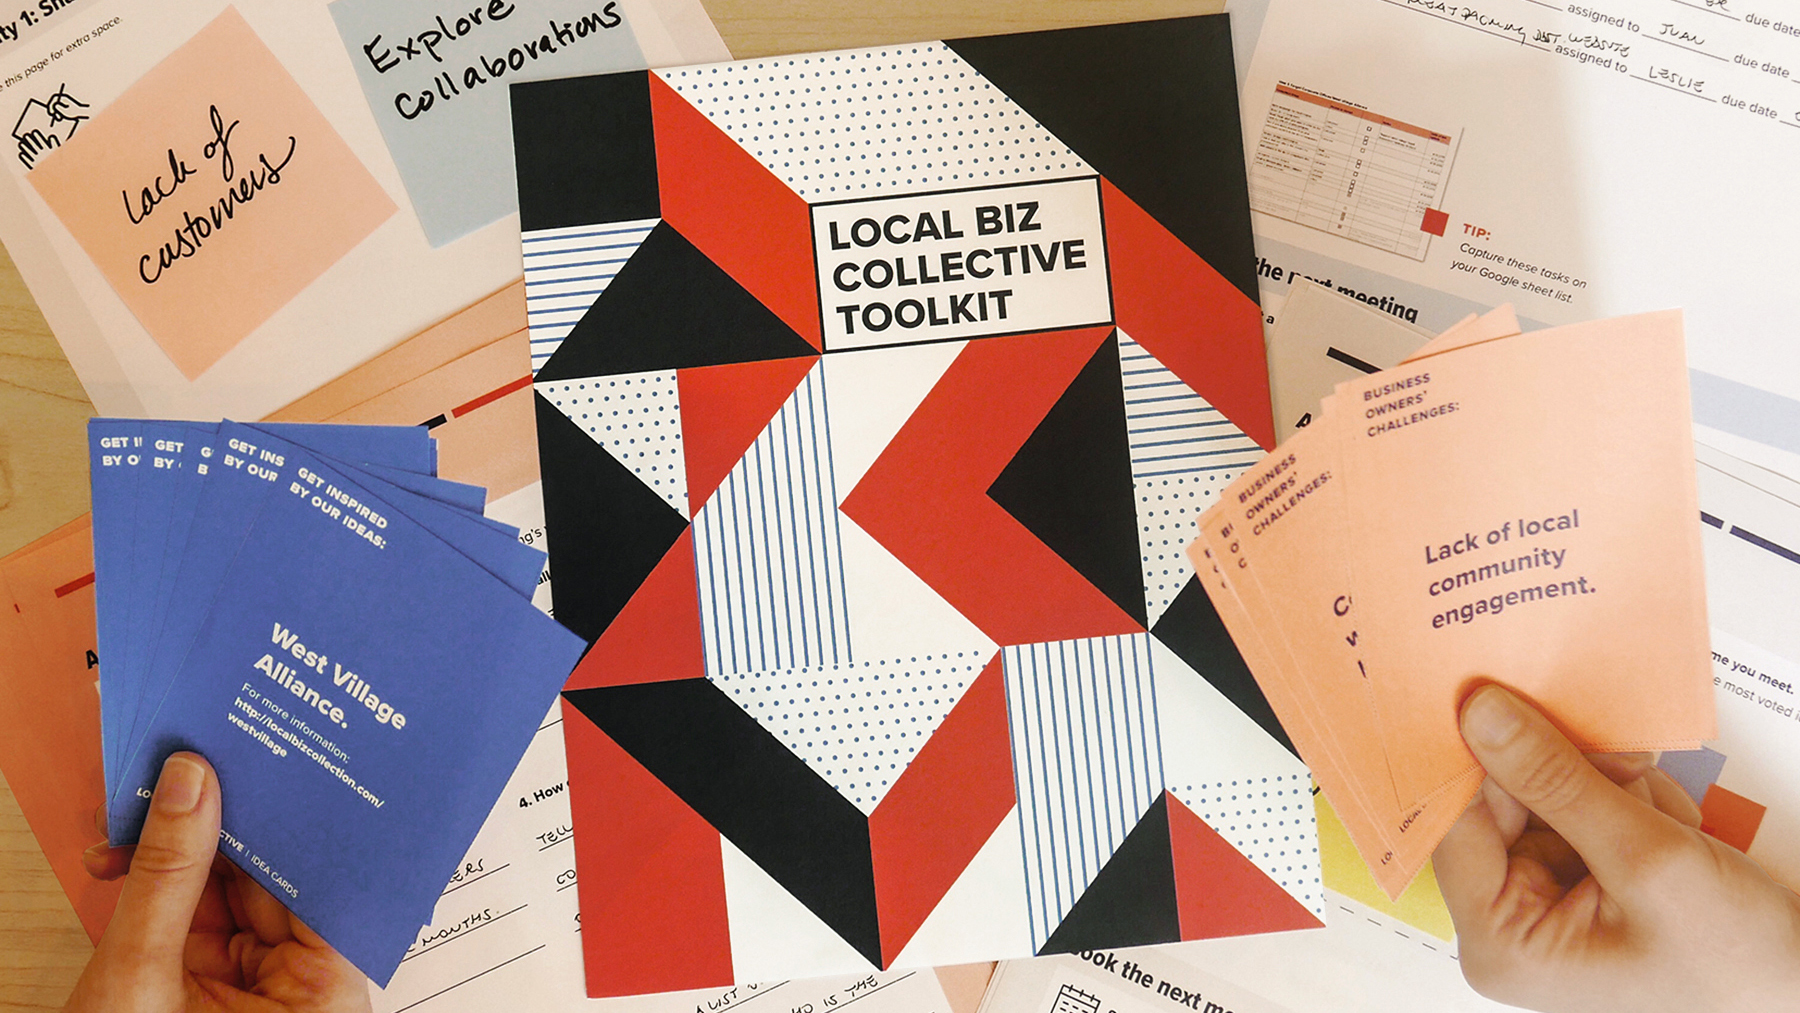 Image of final design of toolkit cover (middle), worksheets (background), idea cards (left) and challenge cards (right).